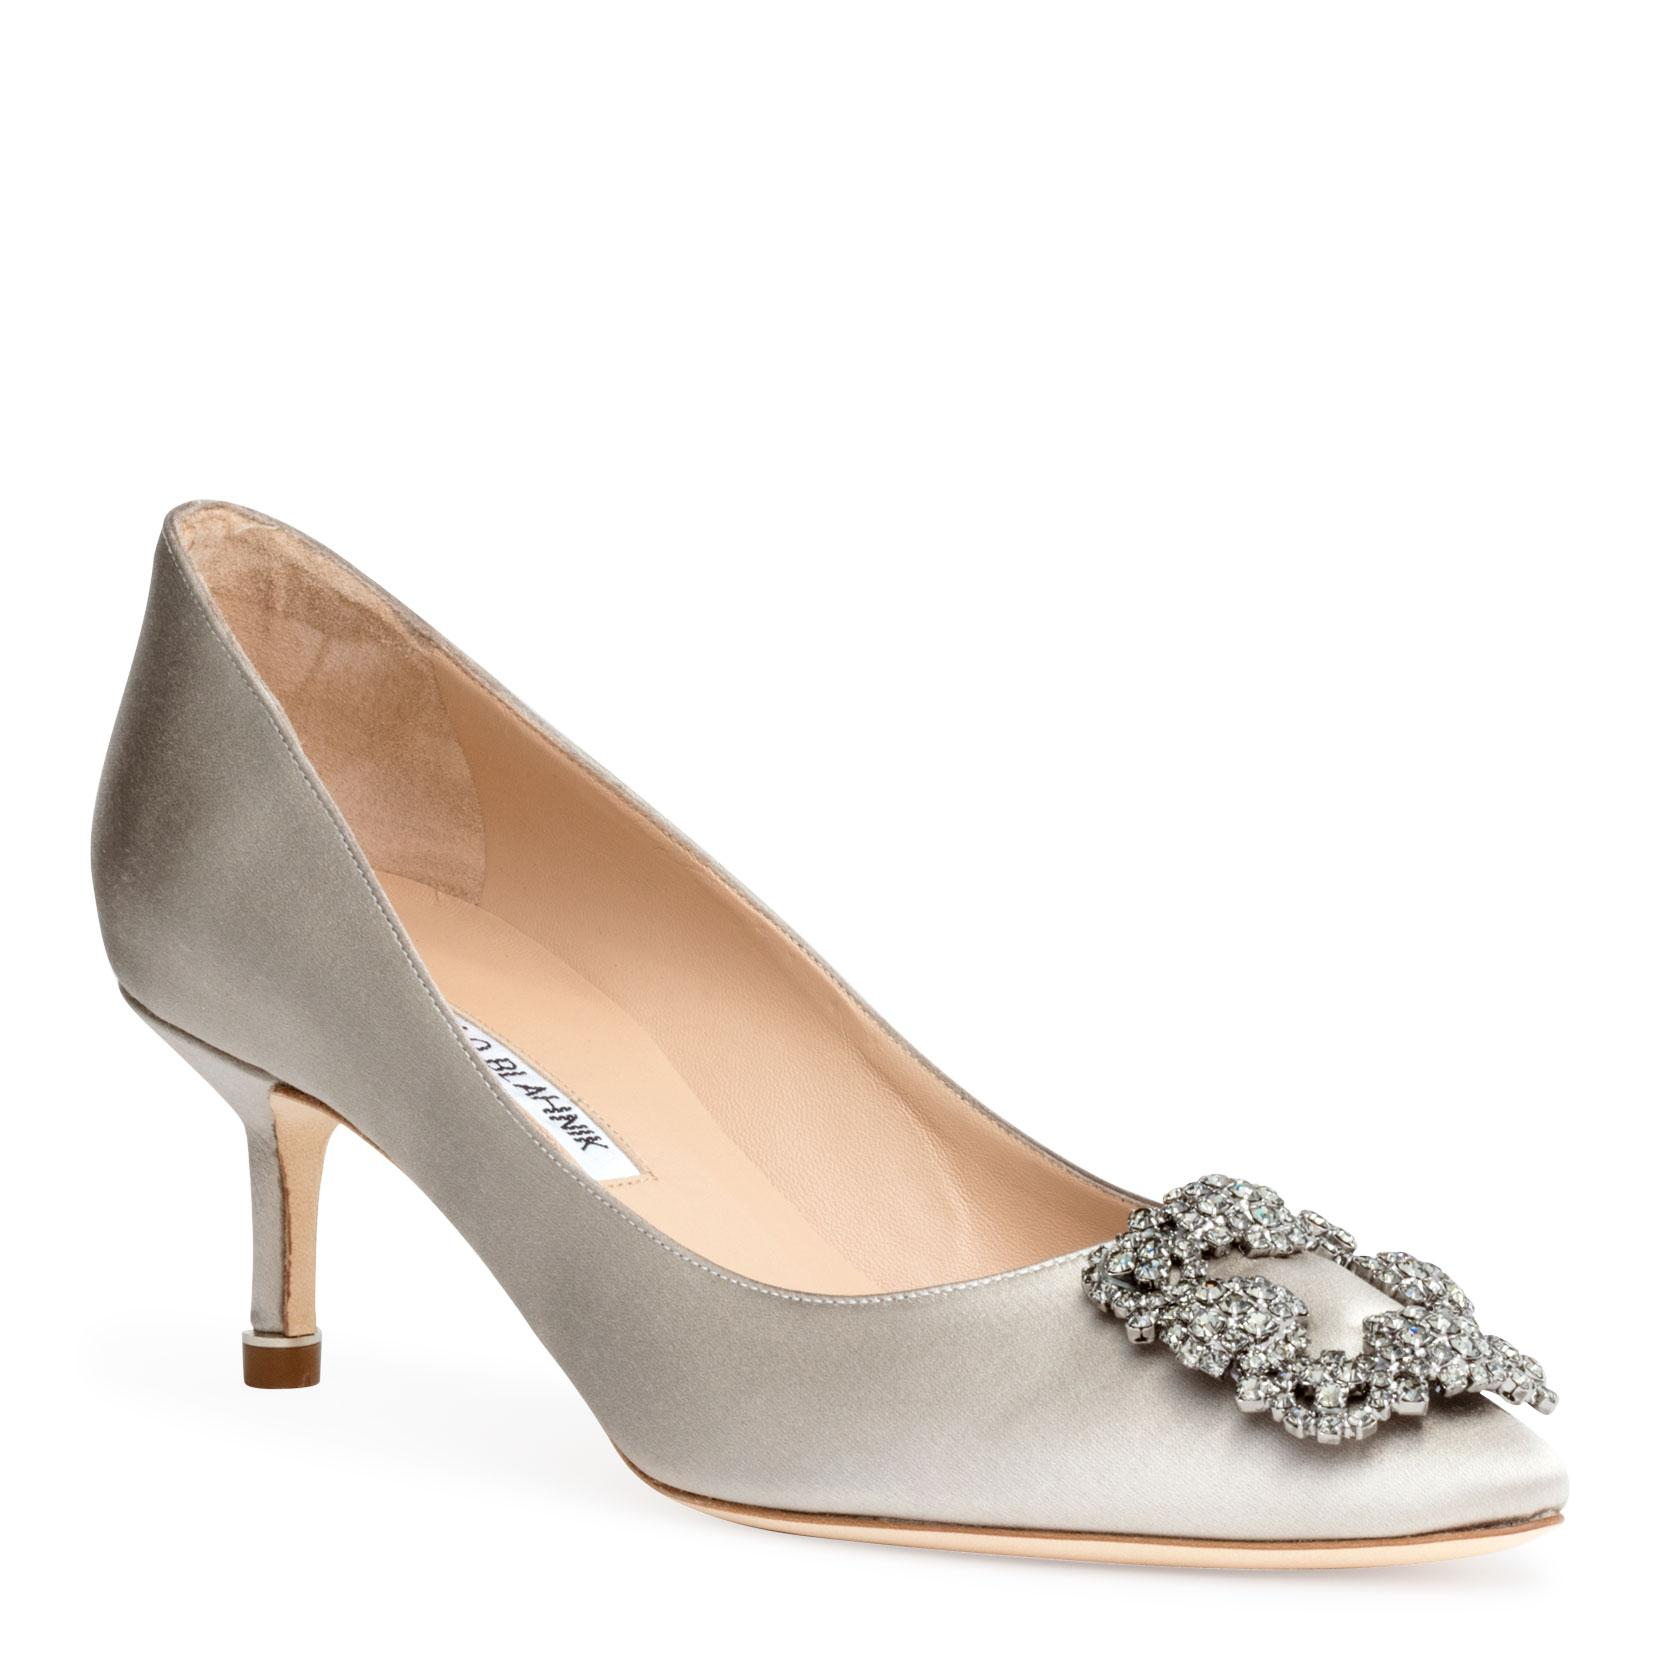 61528e6323d4 Manolo Blahnik Hangisi 50 Satin Silver Grey Pumps